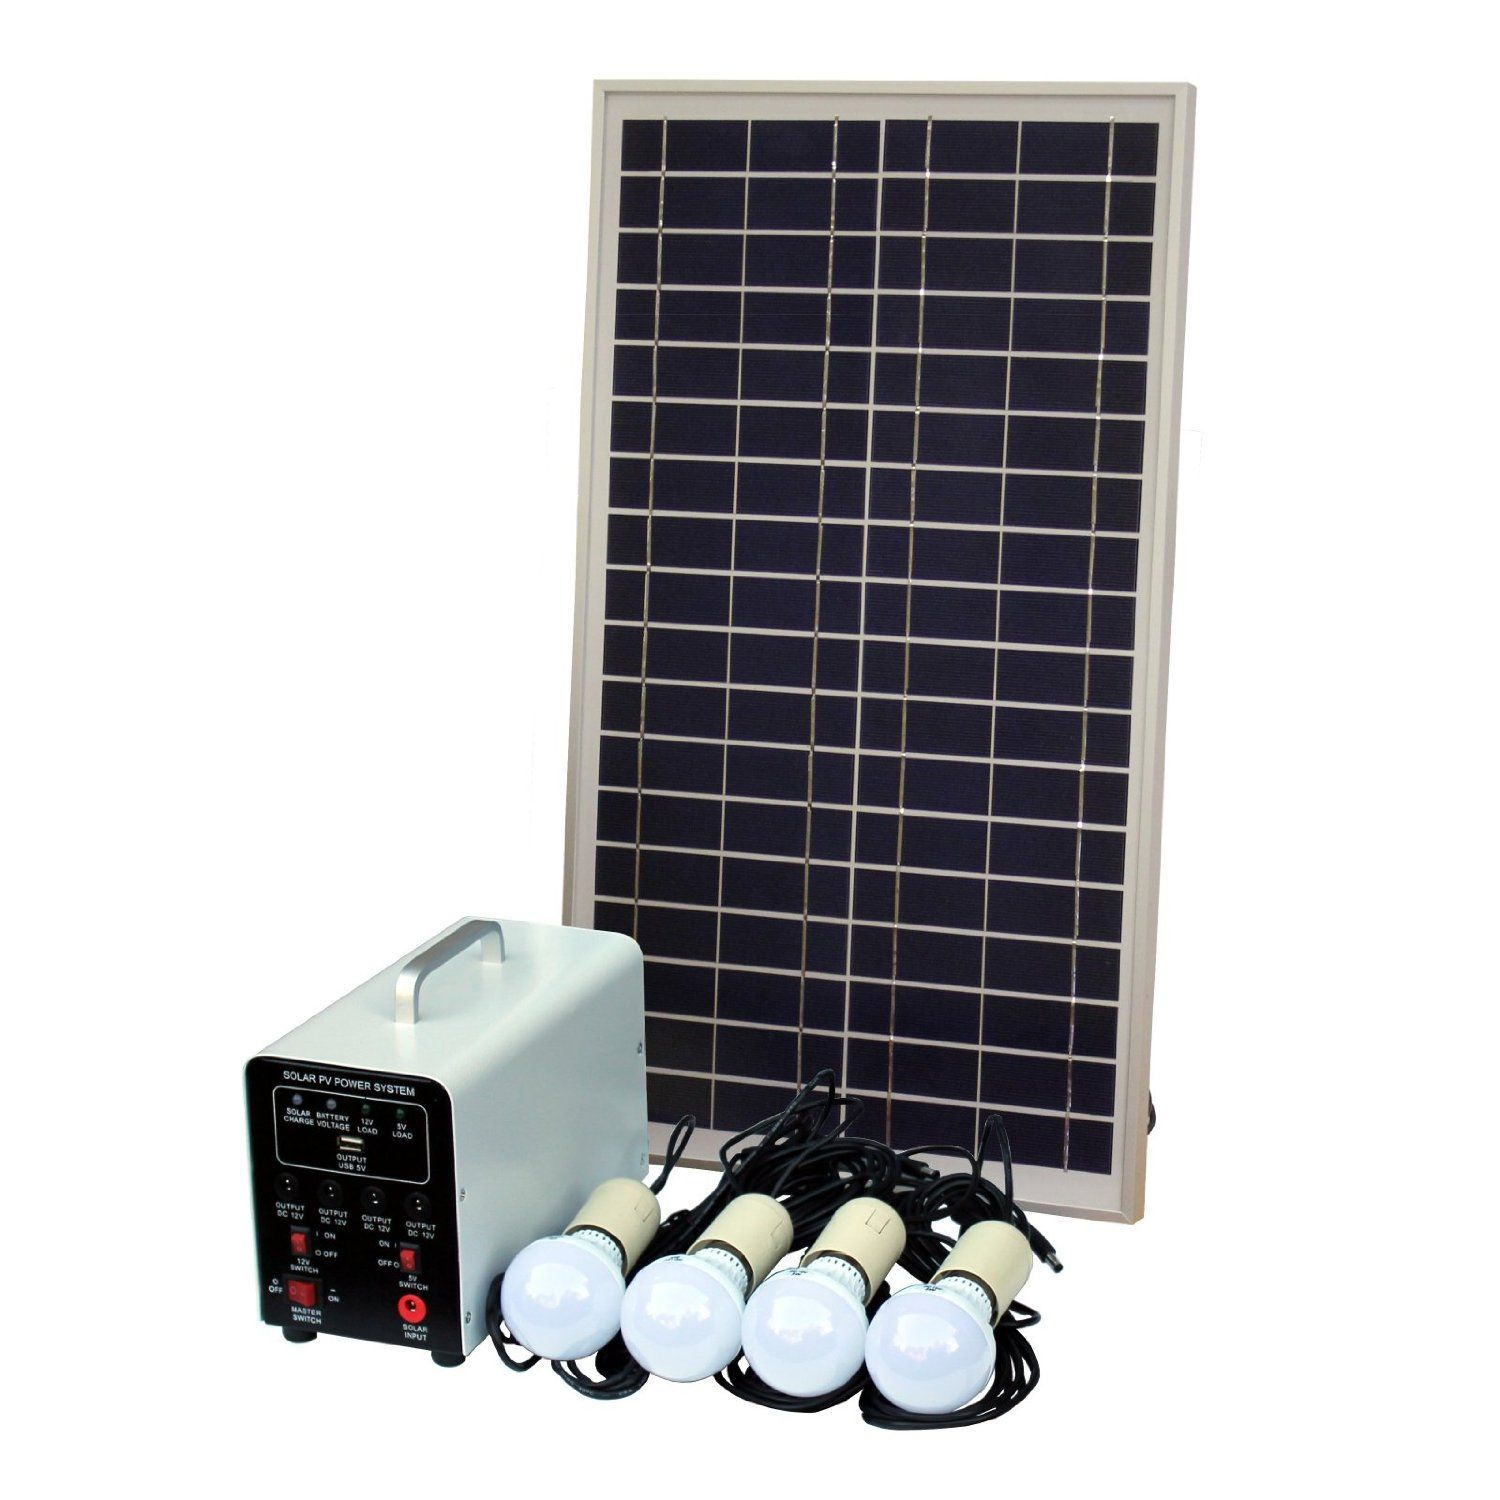 25w Off Grid Solar Lighting System With 4 X 5w Led Lights Panel Battery And Cables Complete Kit For A Shed Garage Outhouse